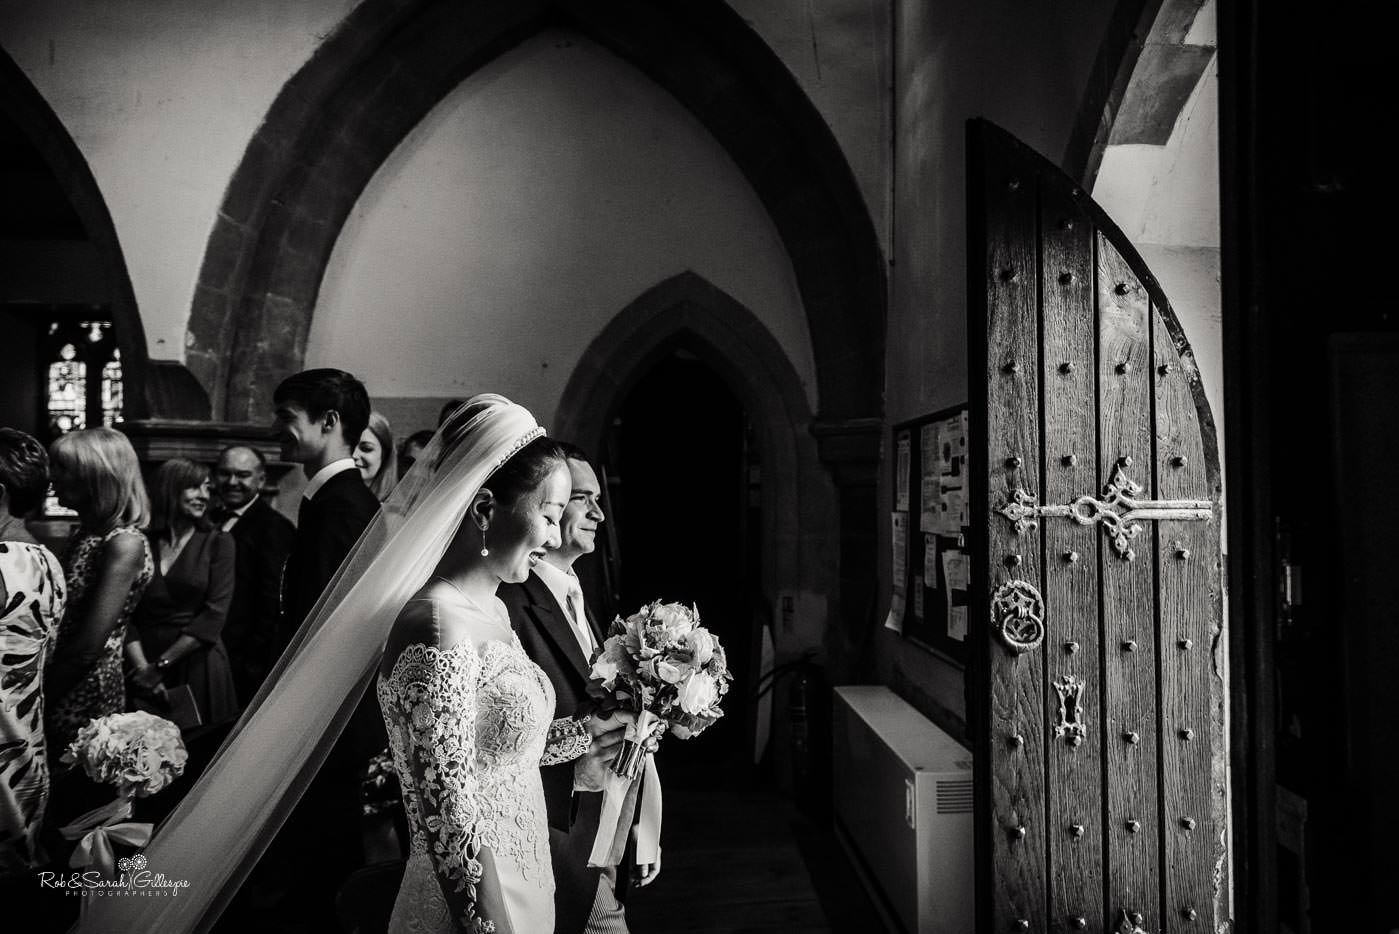 Wedding at St Peter's church Bourton-on-Dunsmore photographed by Rob & Sarah Gillespie